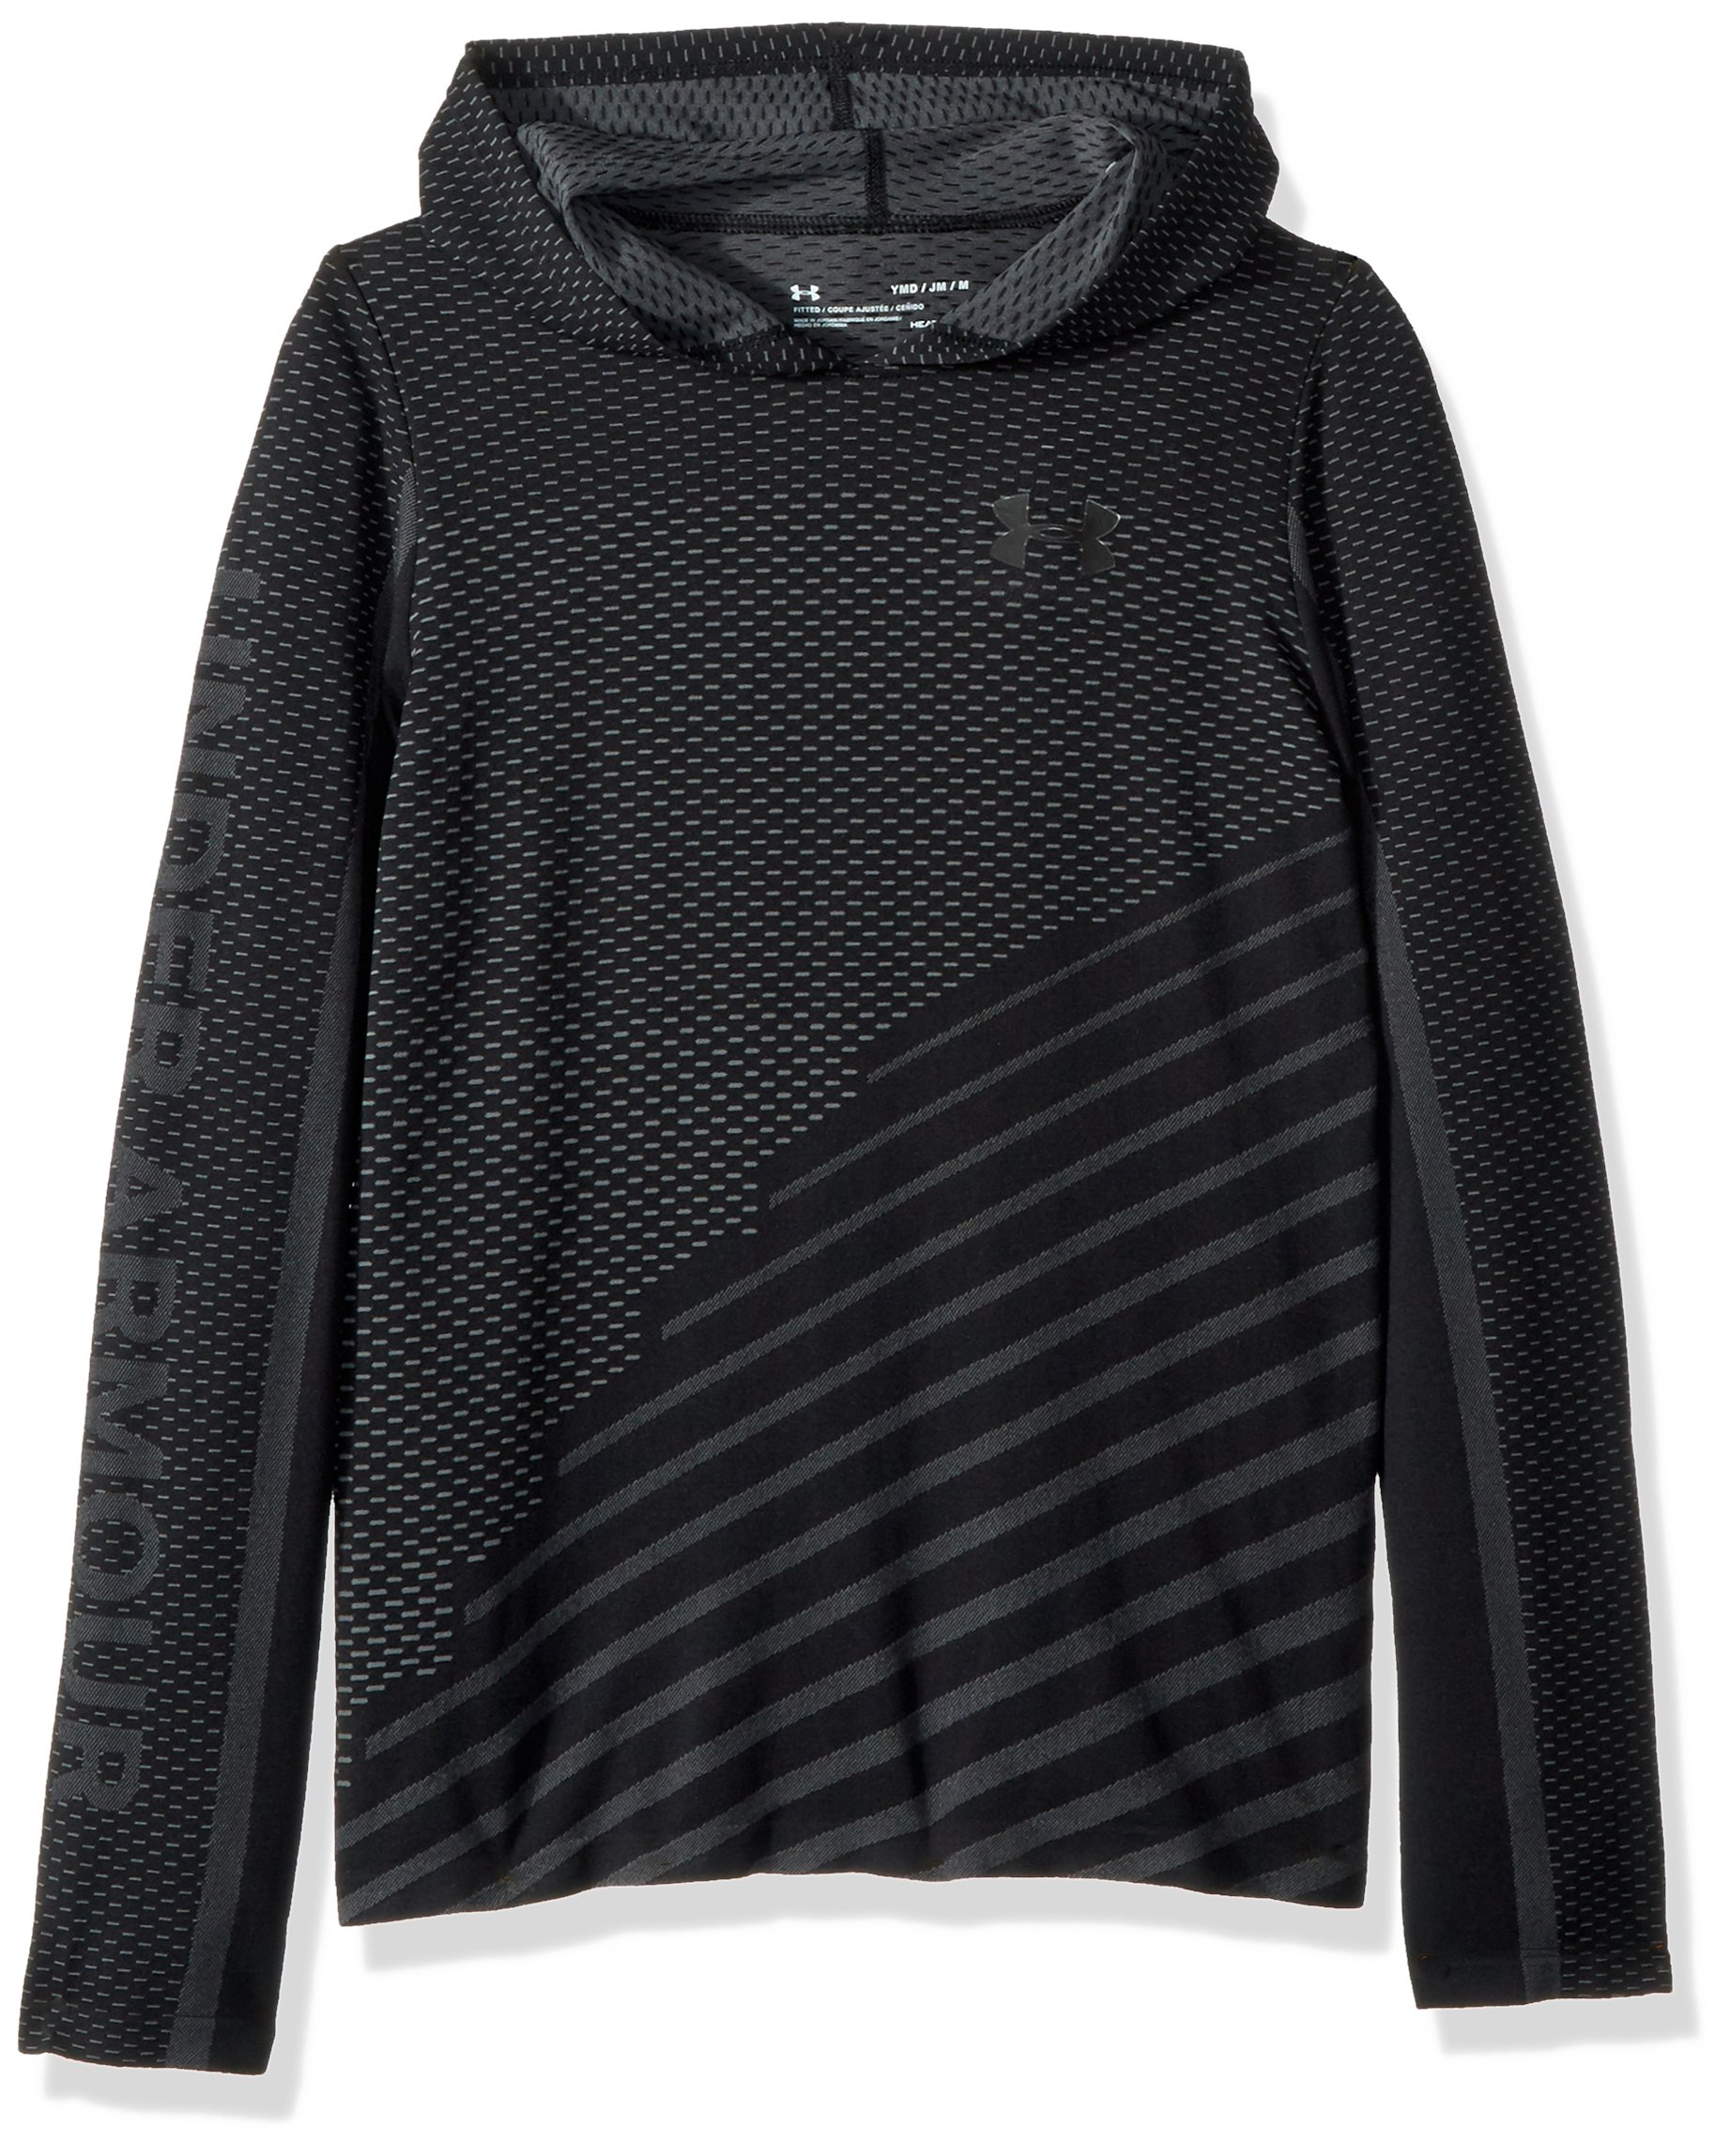 Under Armour Girls Seamless Hoodie, Black (001)/Black, Youth Medium by Under Armour